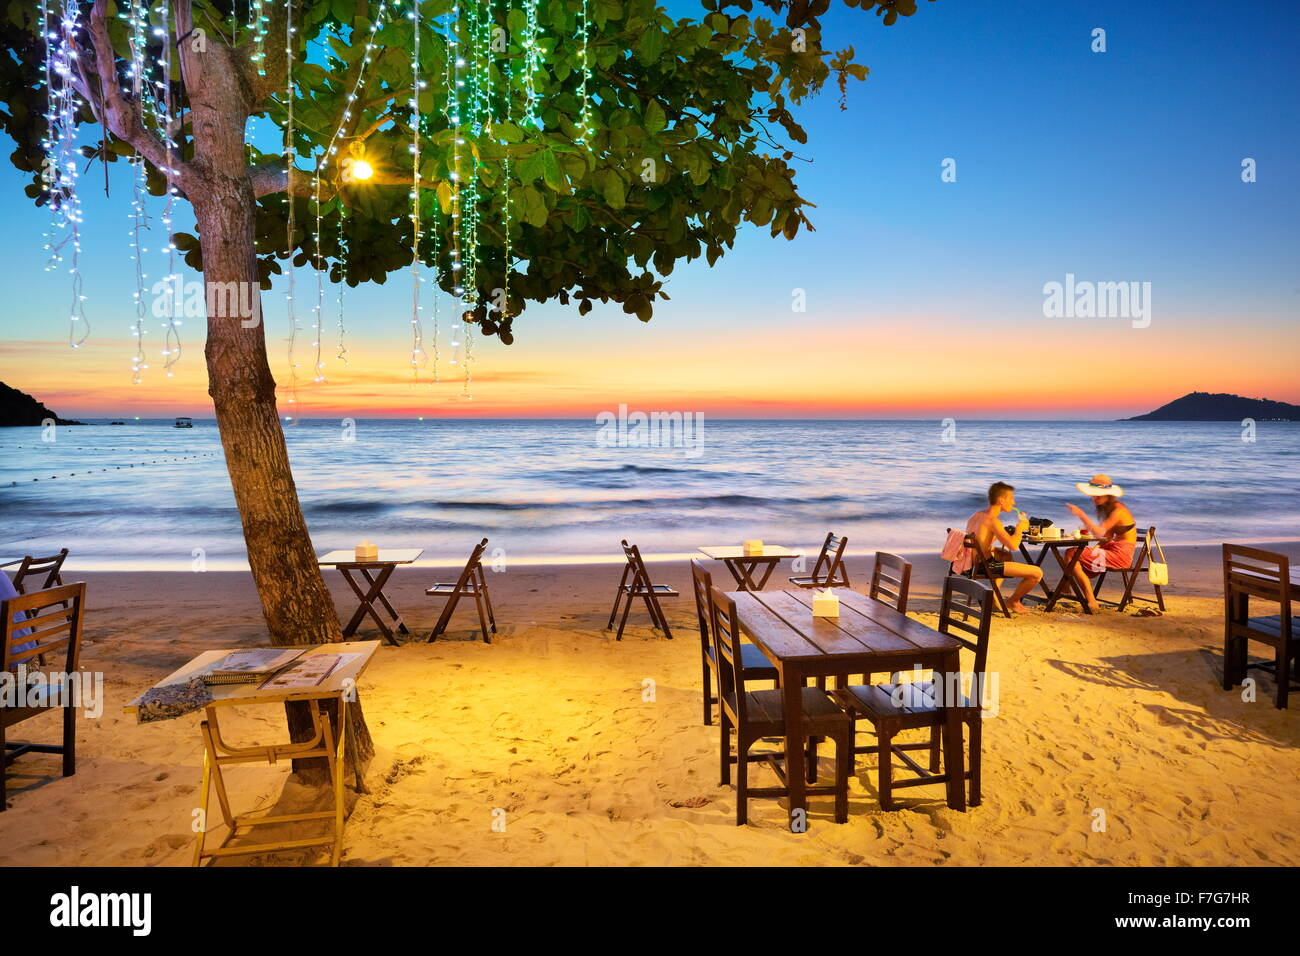 Le restaurant tropical sur la plage de Lima Coco Resort, Koh Samet Island, Thaïlande Photo Stock